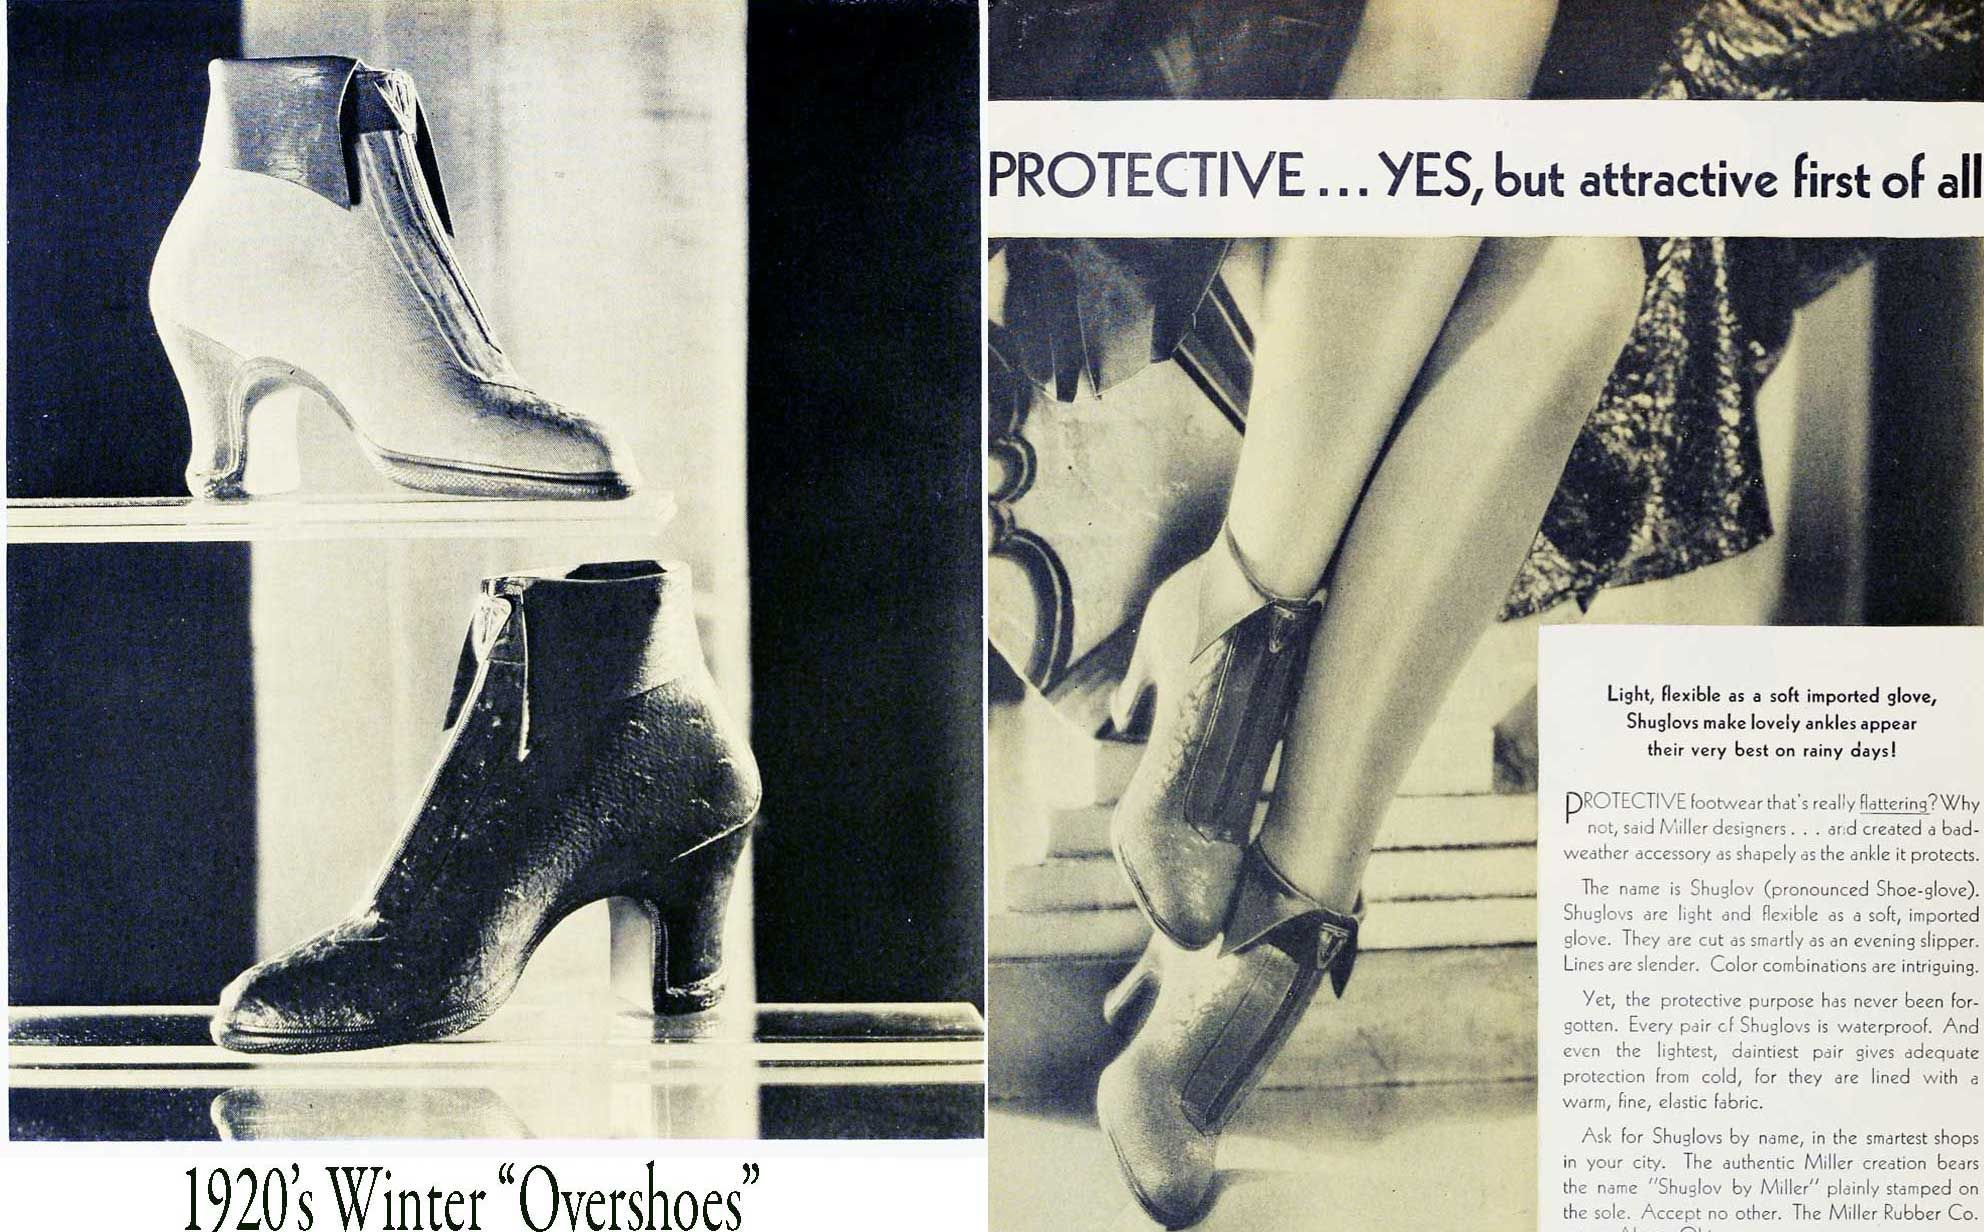 Swinterovershoes keep your pretty heels clean and dry on the